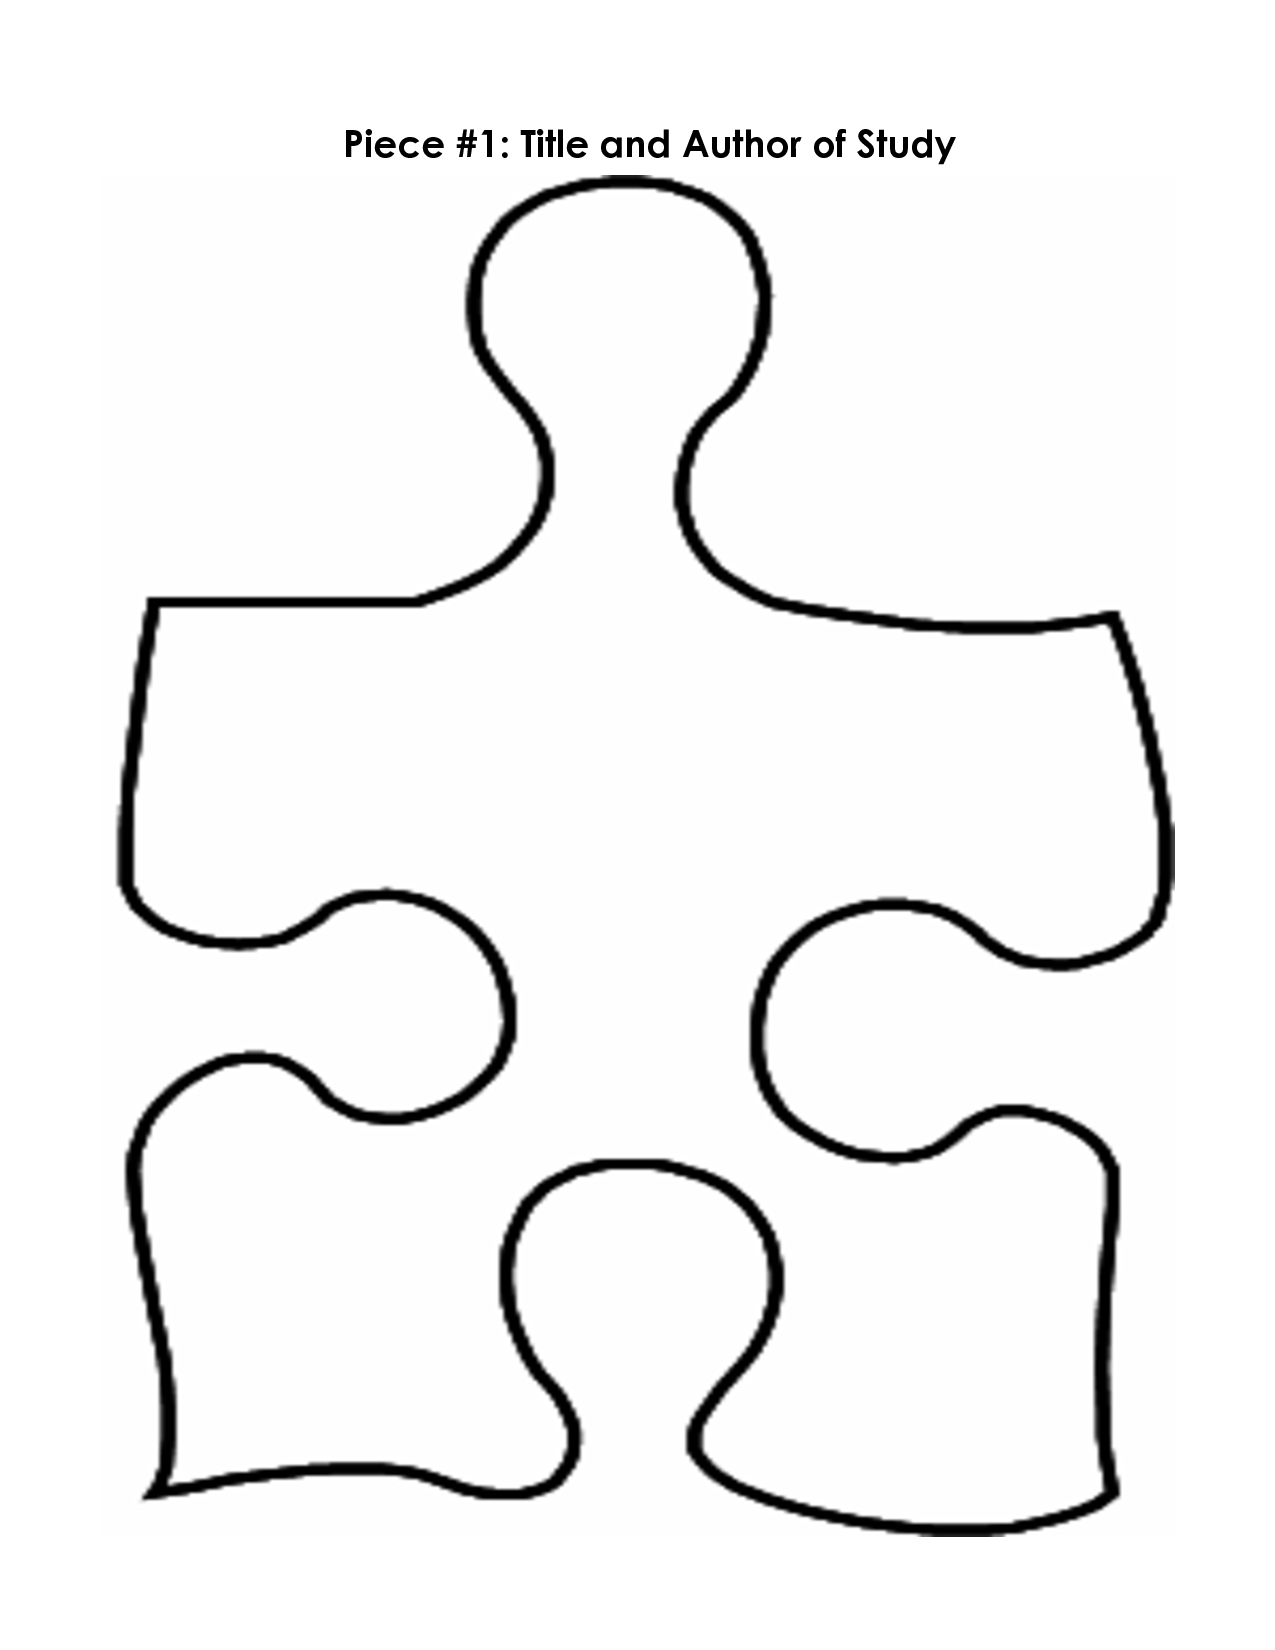 Free Puzzle Pieces Template, Download Free Clip Art, Free Clip Art - Printable Large Puzzle Pieces